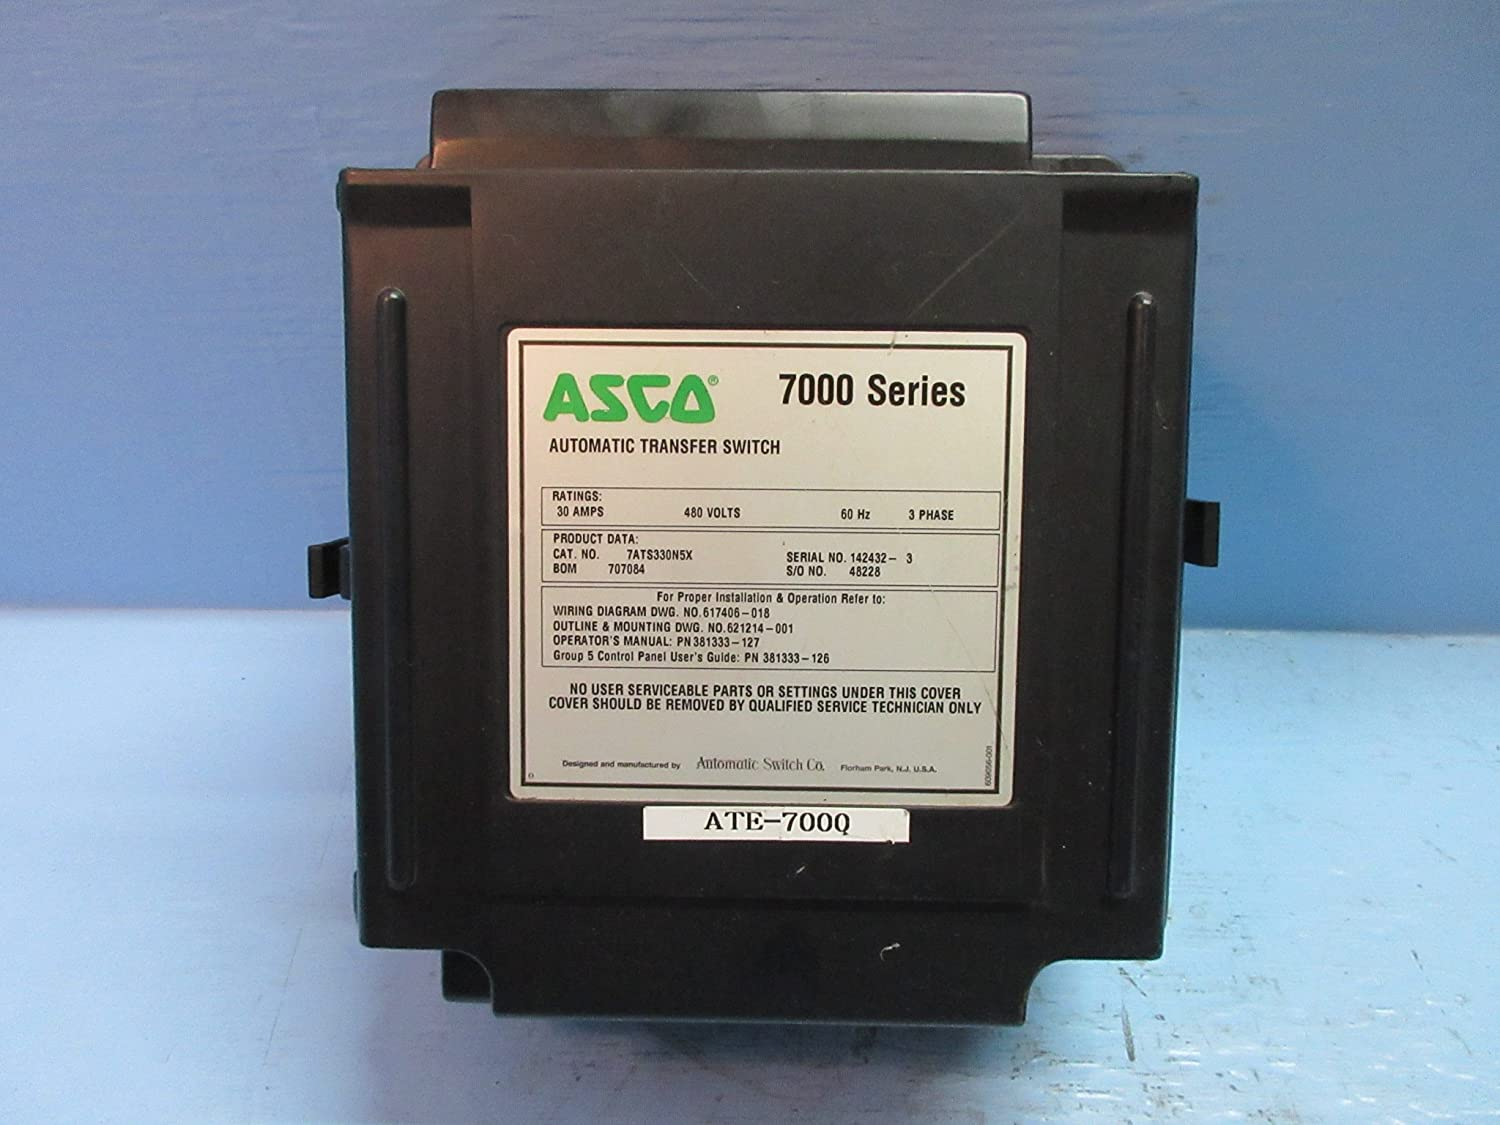 Asco 7000 Series Transfer Control Center 601800 002 Automatic Wiring Diagram Switch Industrial Scientific